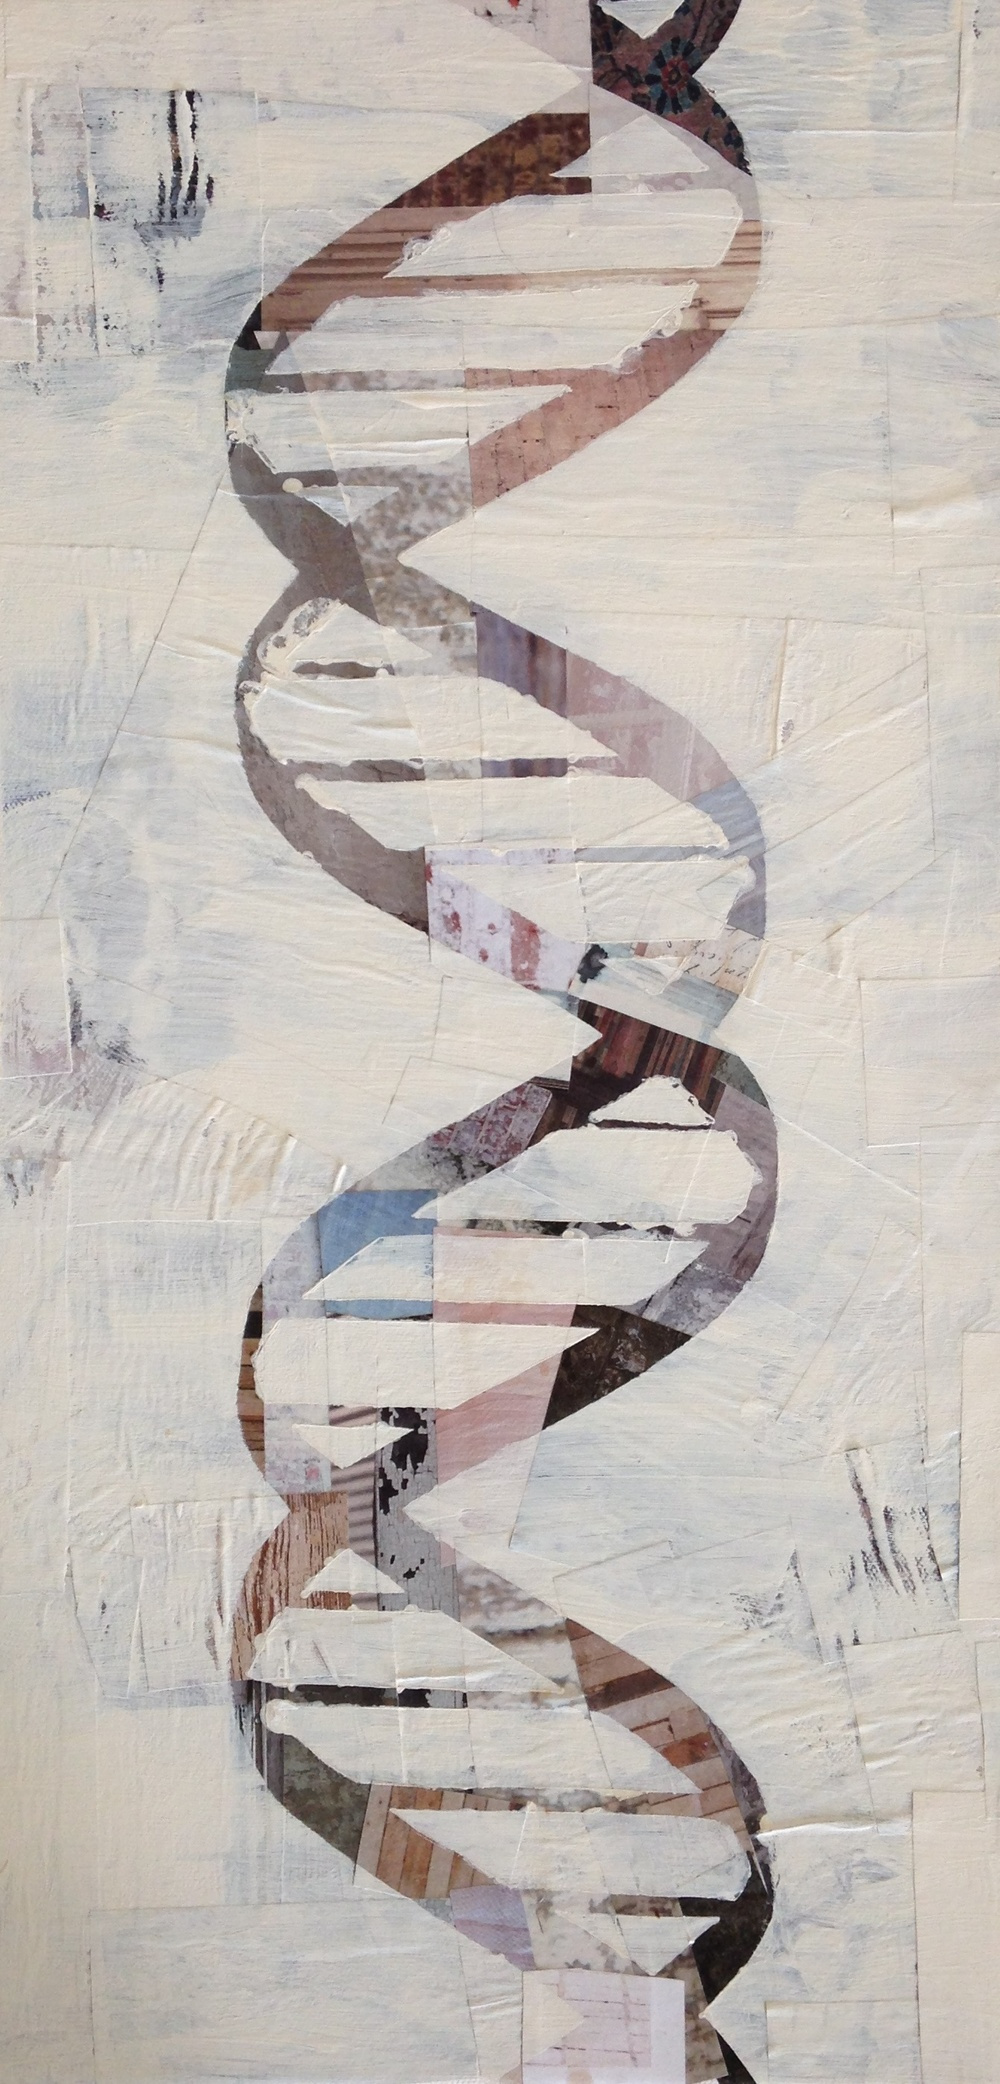 DNA by Micaela Moen, M3